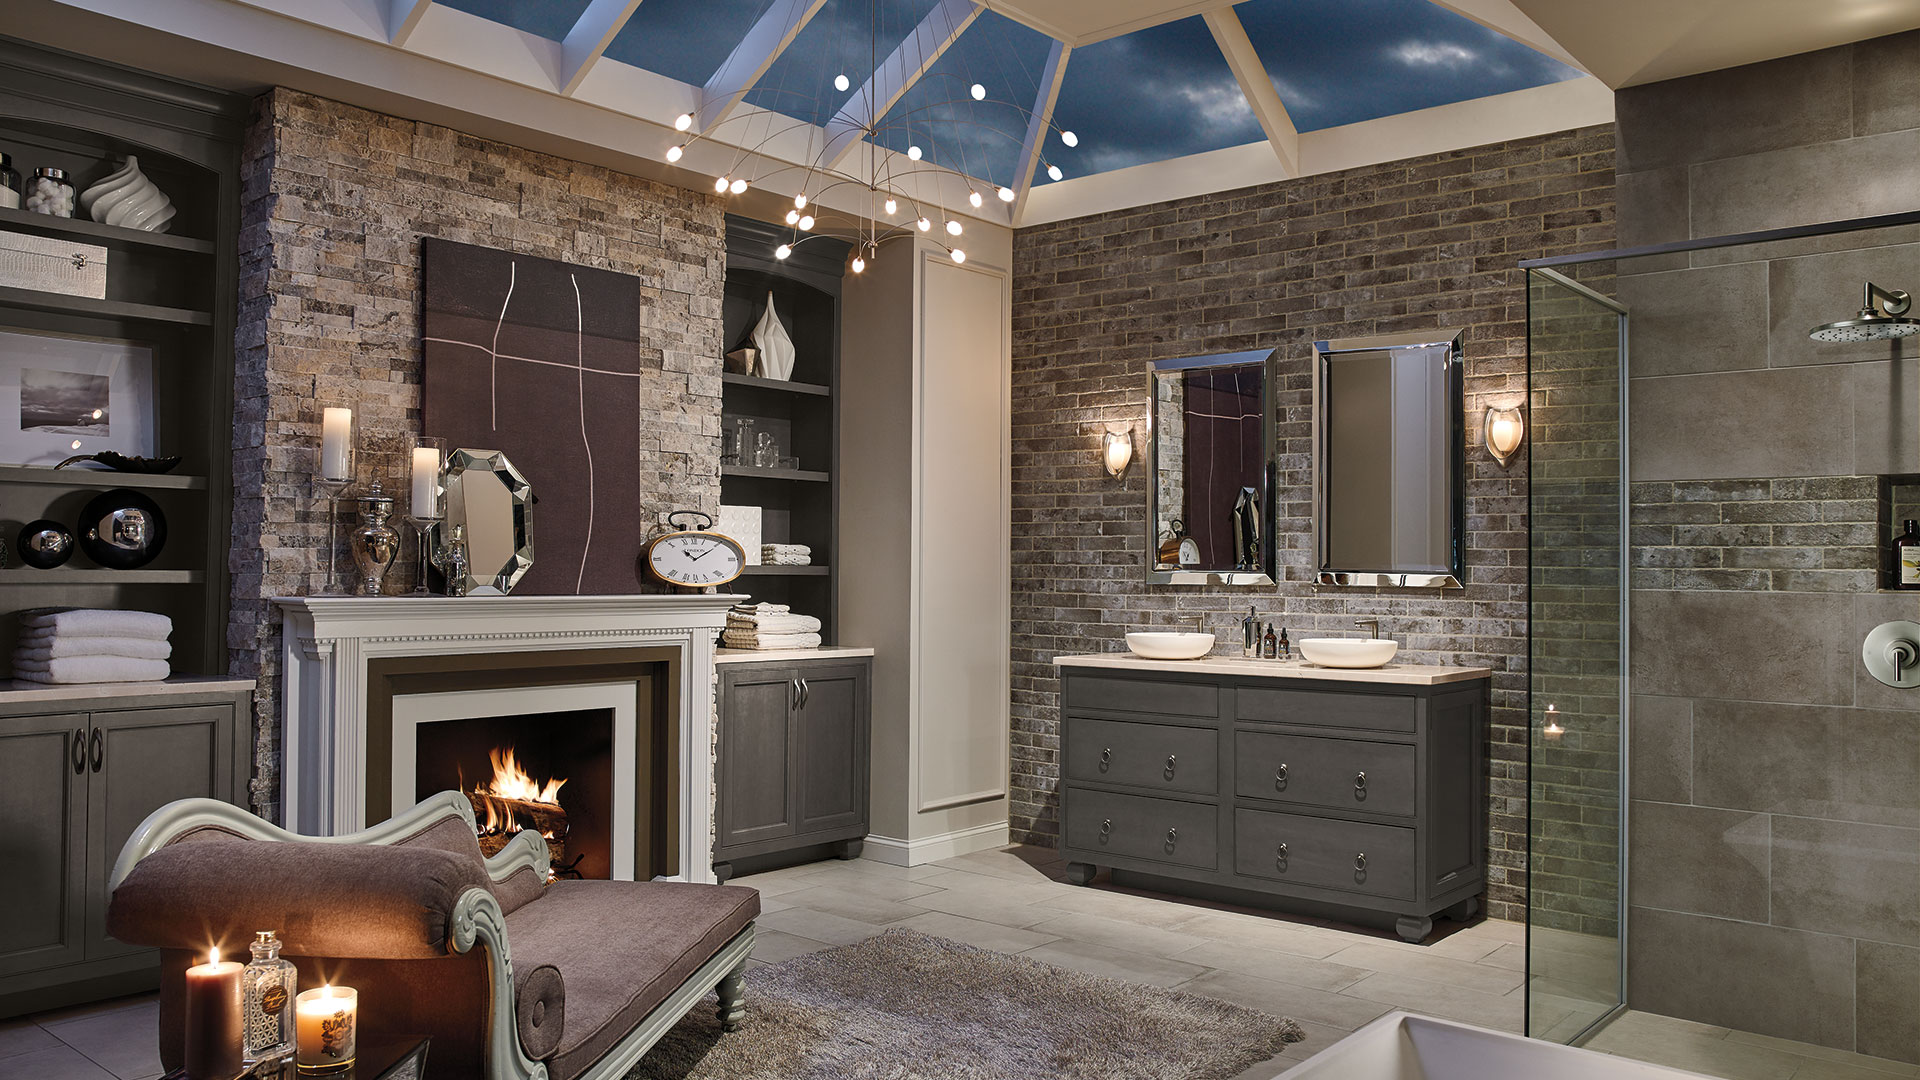 casual_cherry_bathroom_cabinets_in_iced_smokey_hills_finish_large.jpg